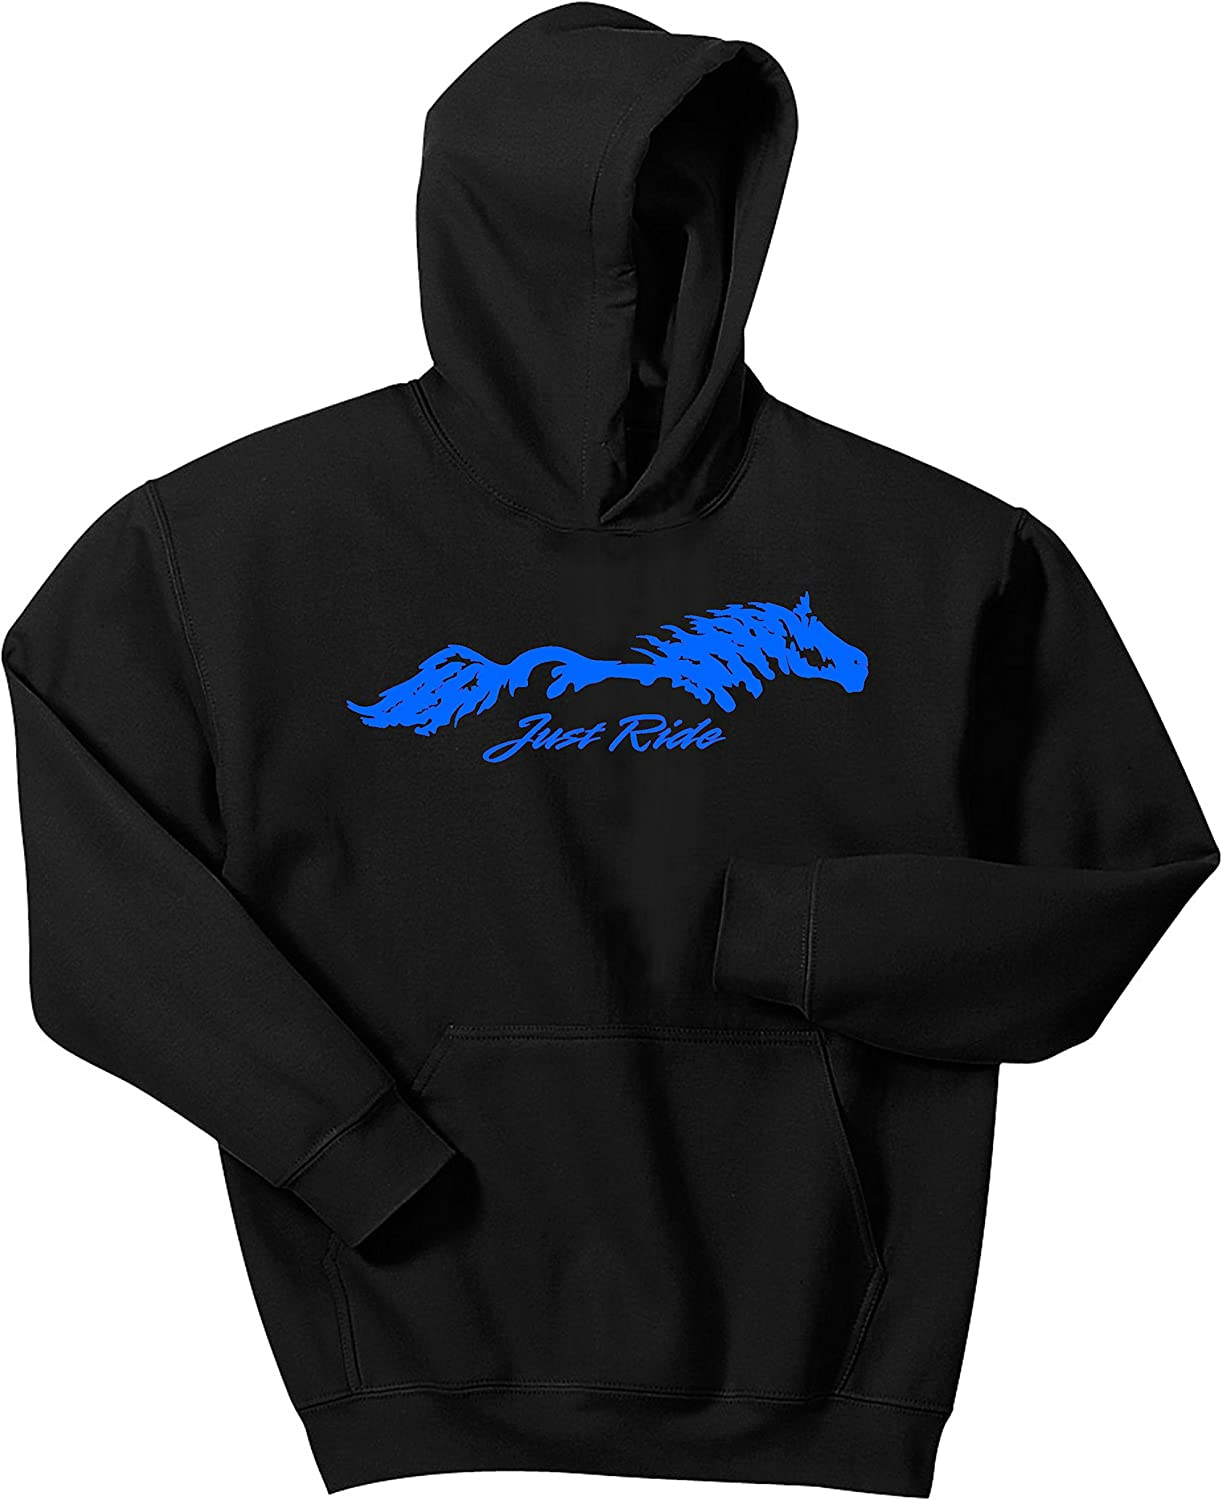 Just Ride Horse Hoodie Sweatshirt